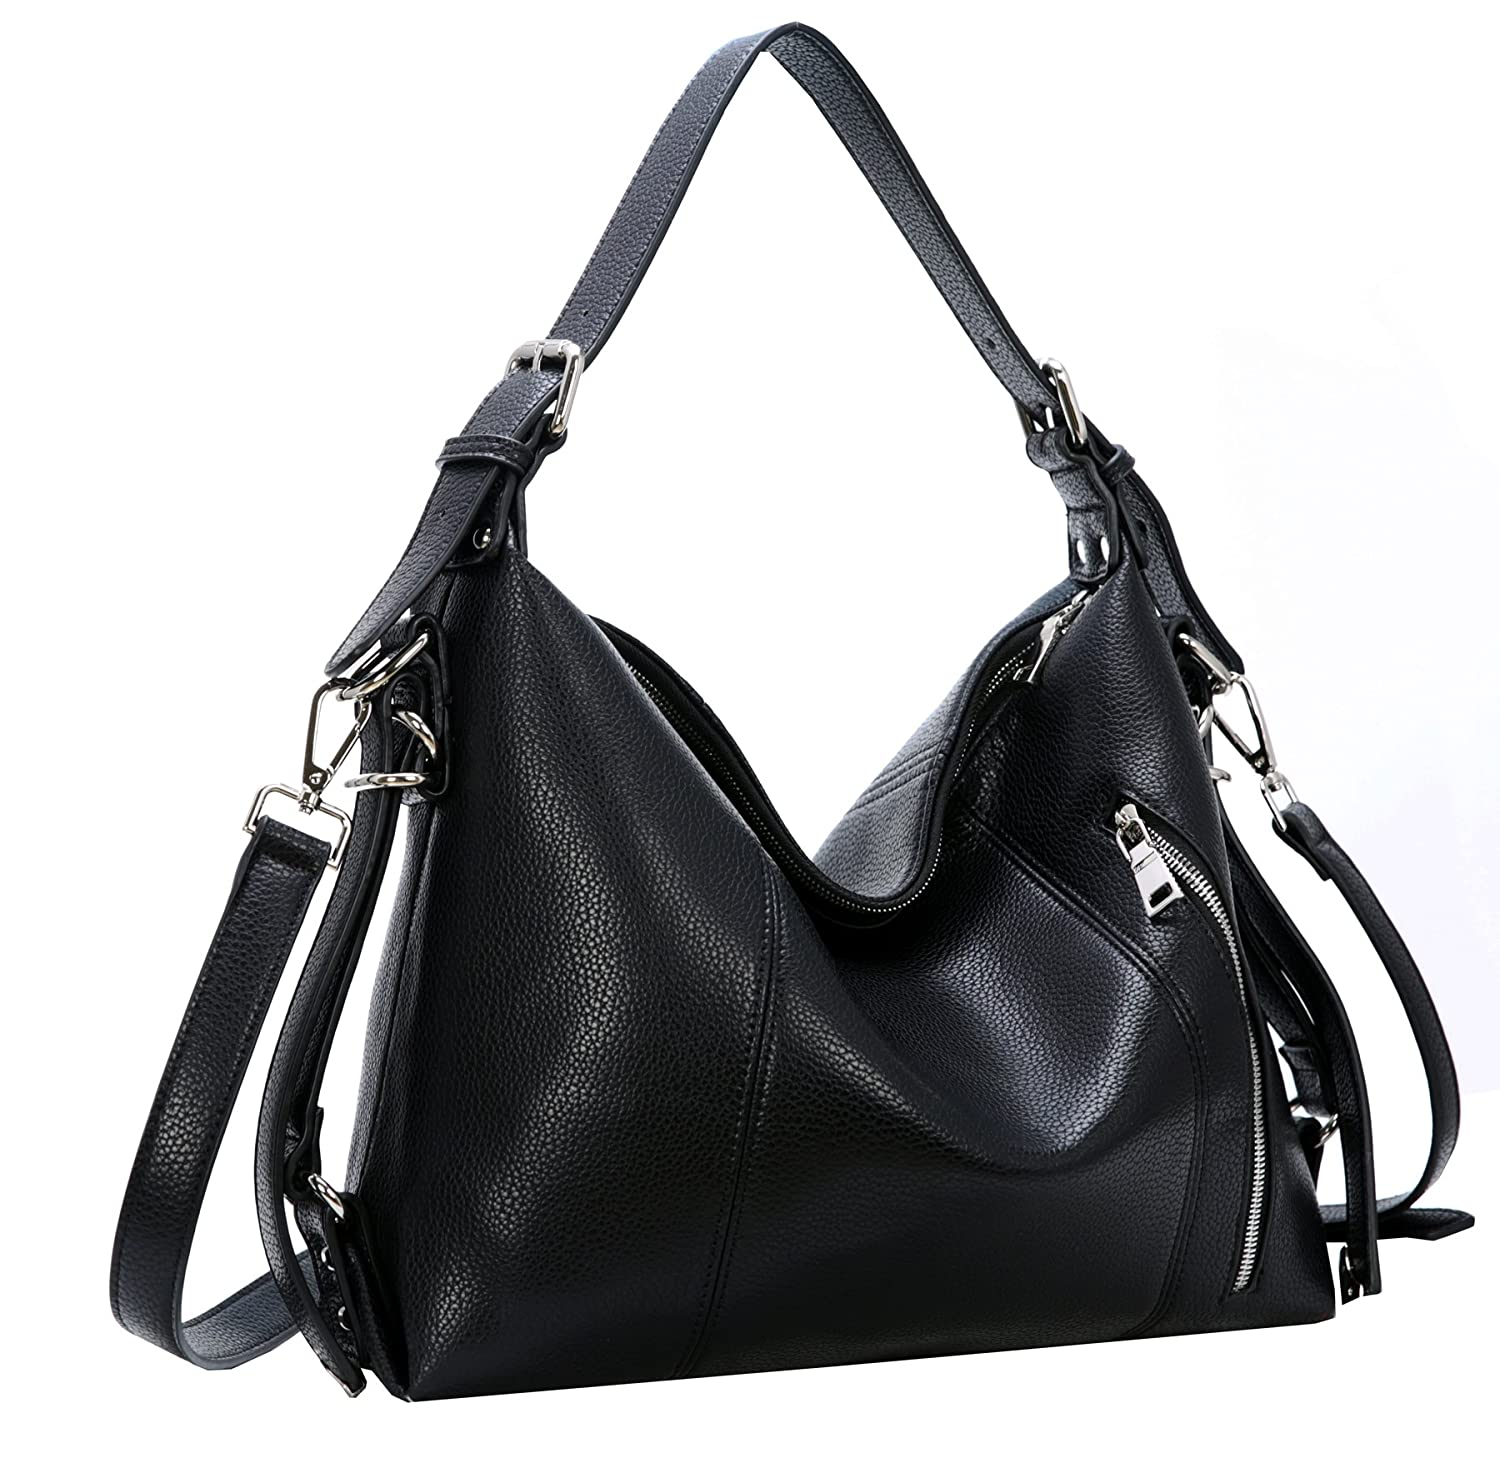 c0807deaa3 Amazon.com  Heshe Womens Leather Shoulder Handbags Large Capacity Tote Purse  Top Handle Crossbody Bags Satchel for Office Lady (Black-PU leather)  Shoes